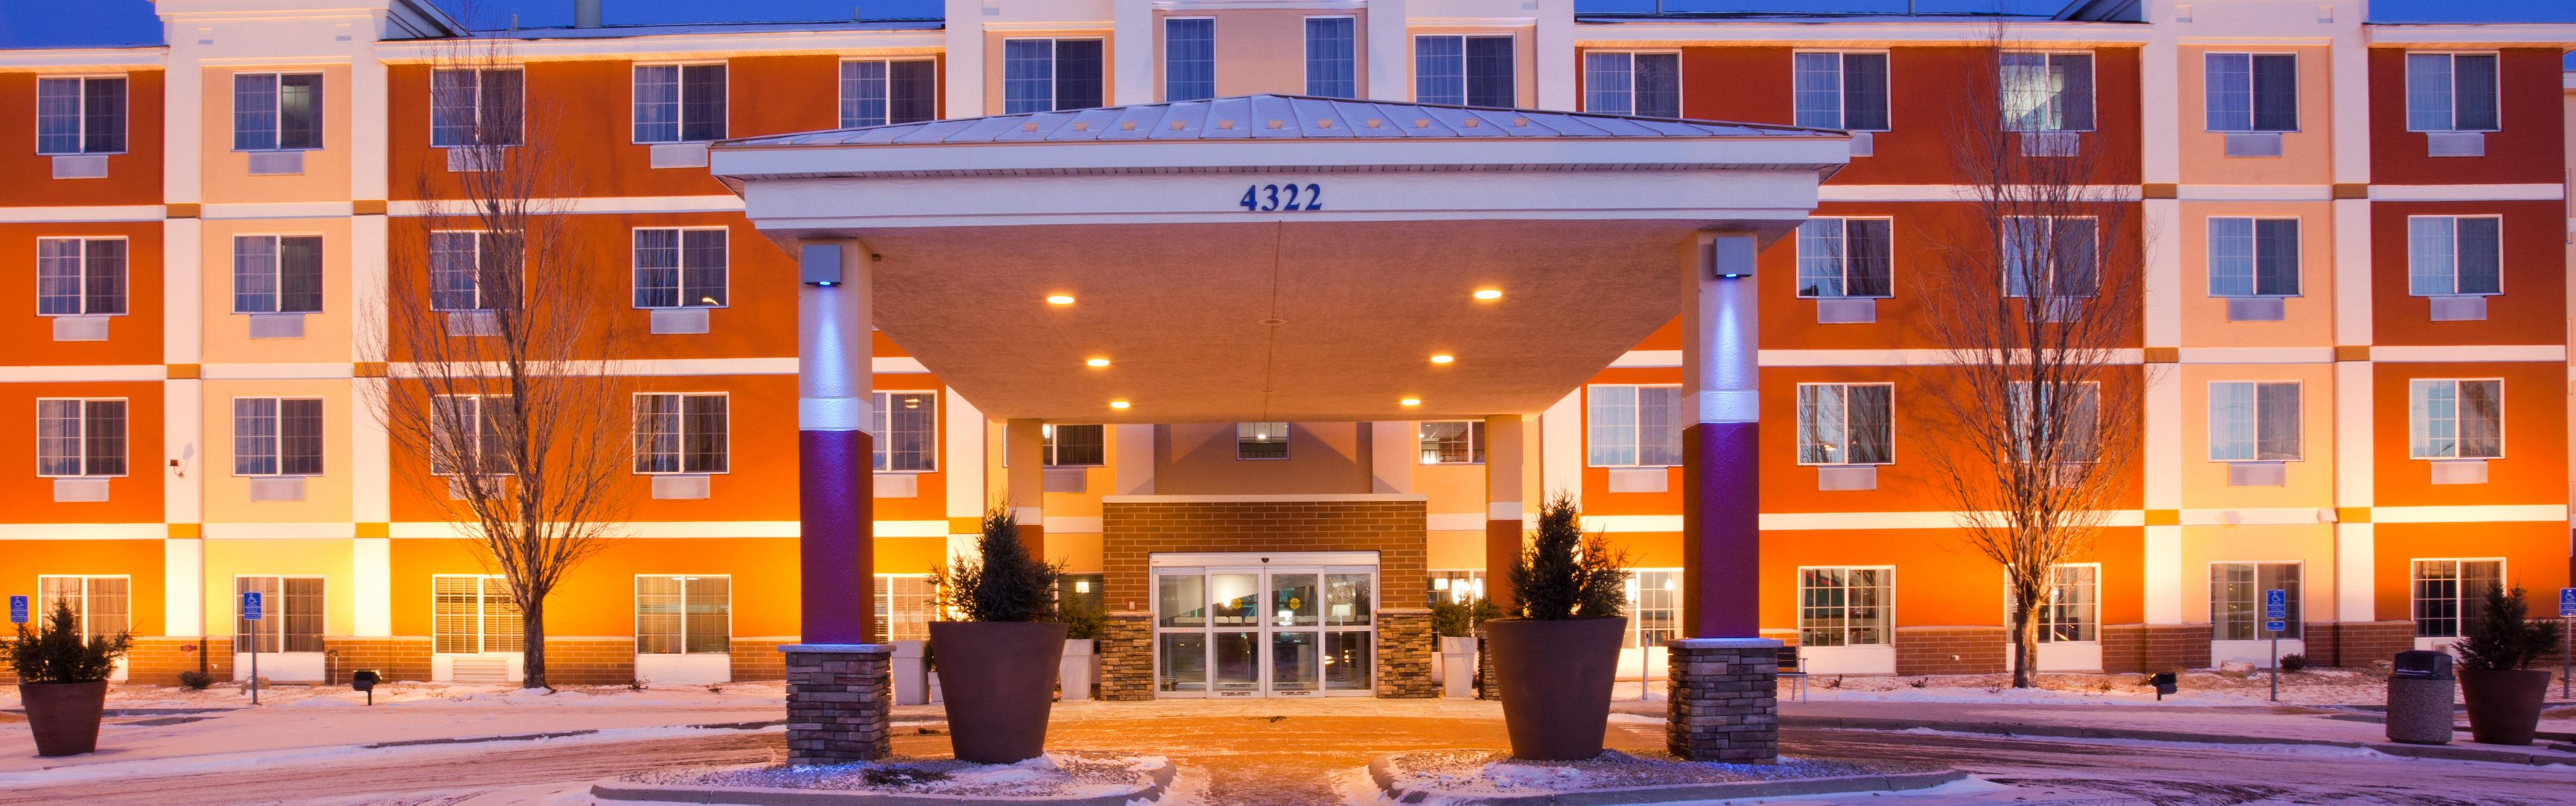 Holiday Inn Express & Suites St. Cloud image 0